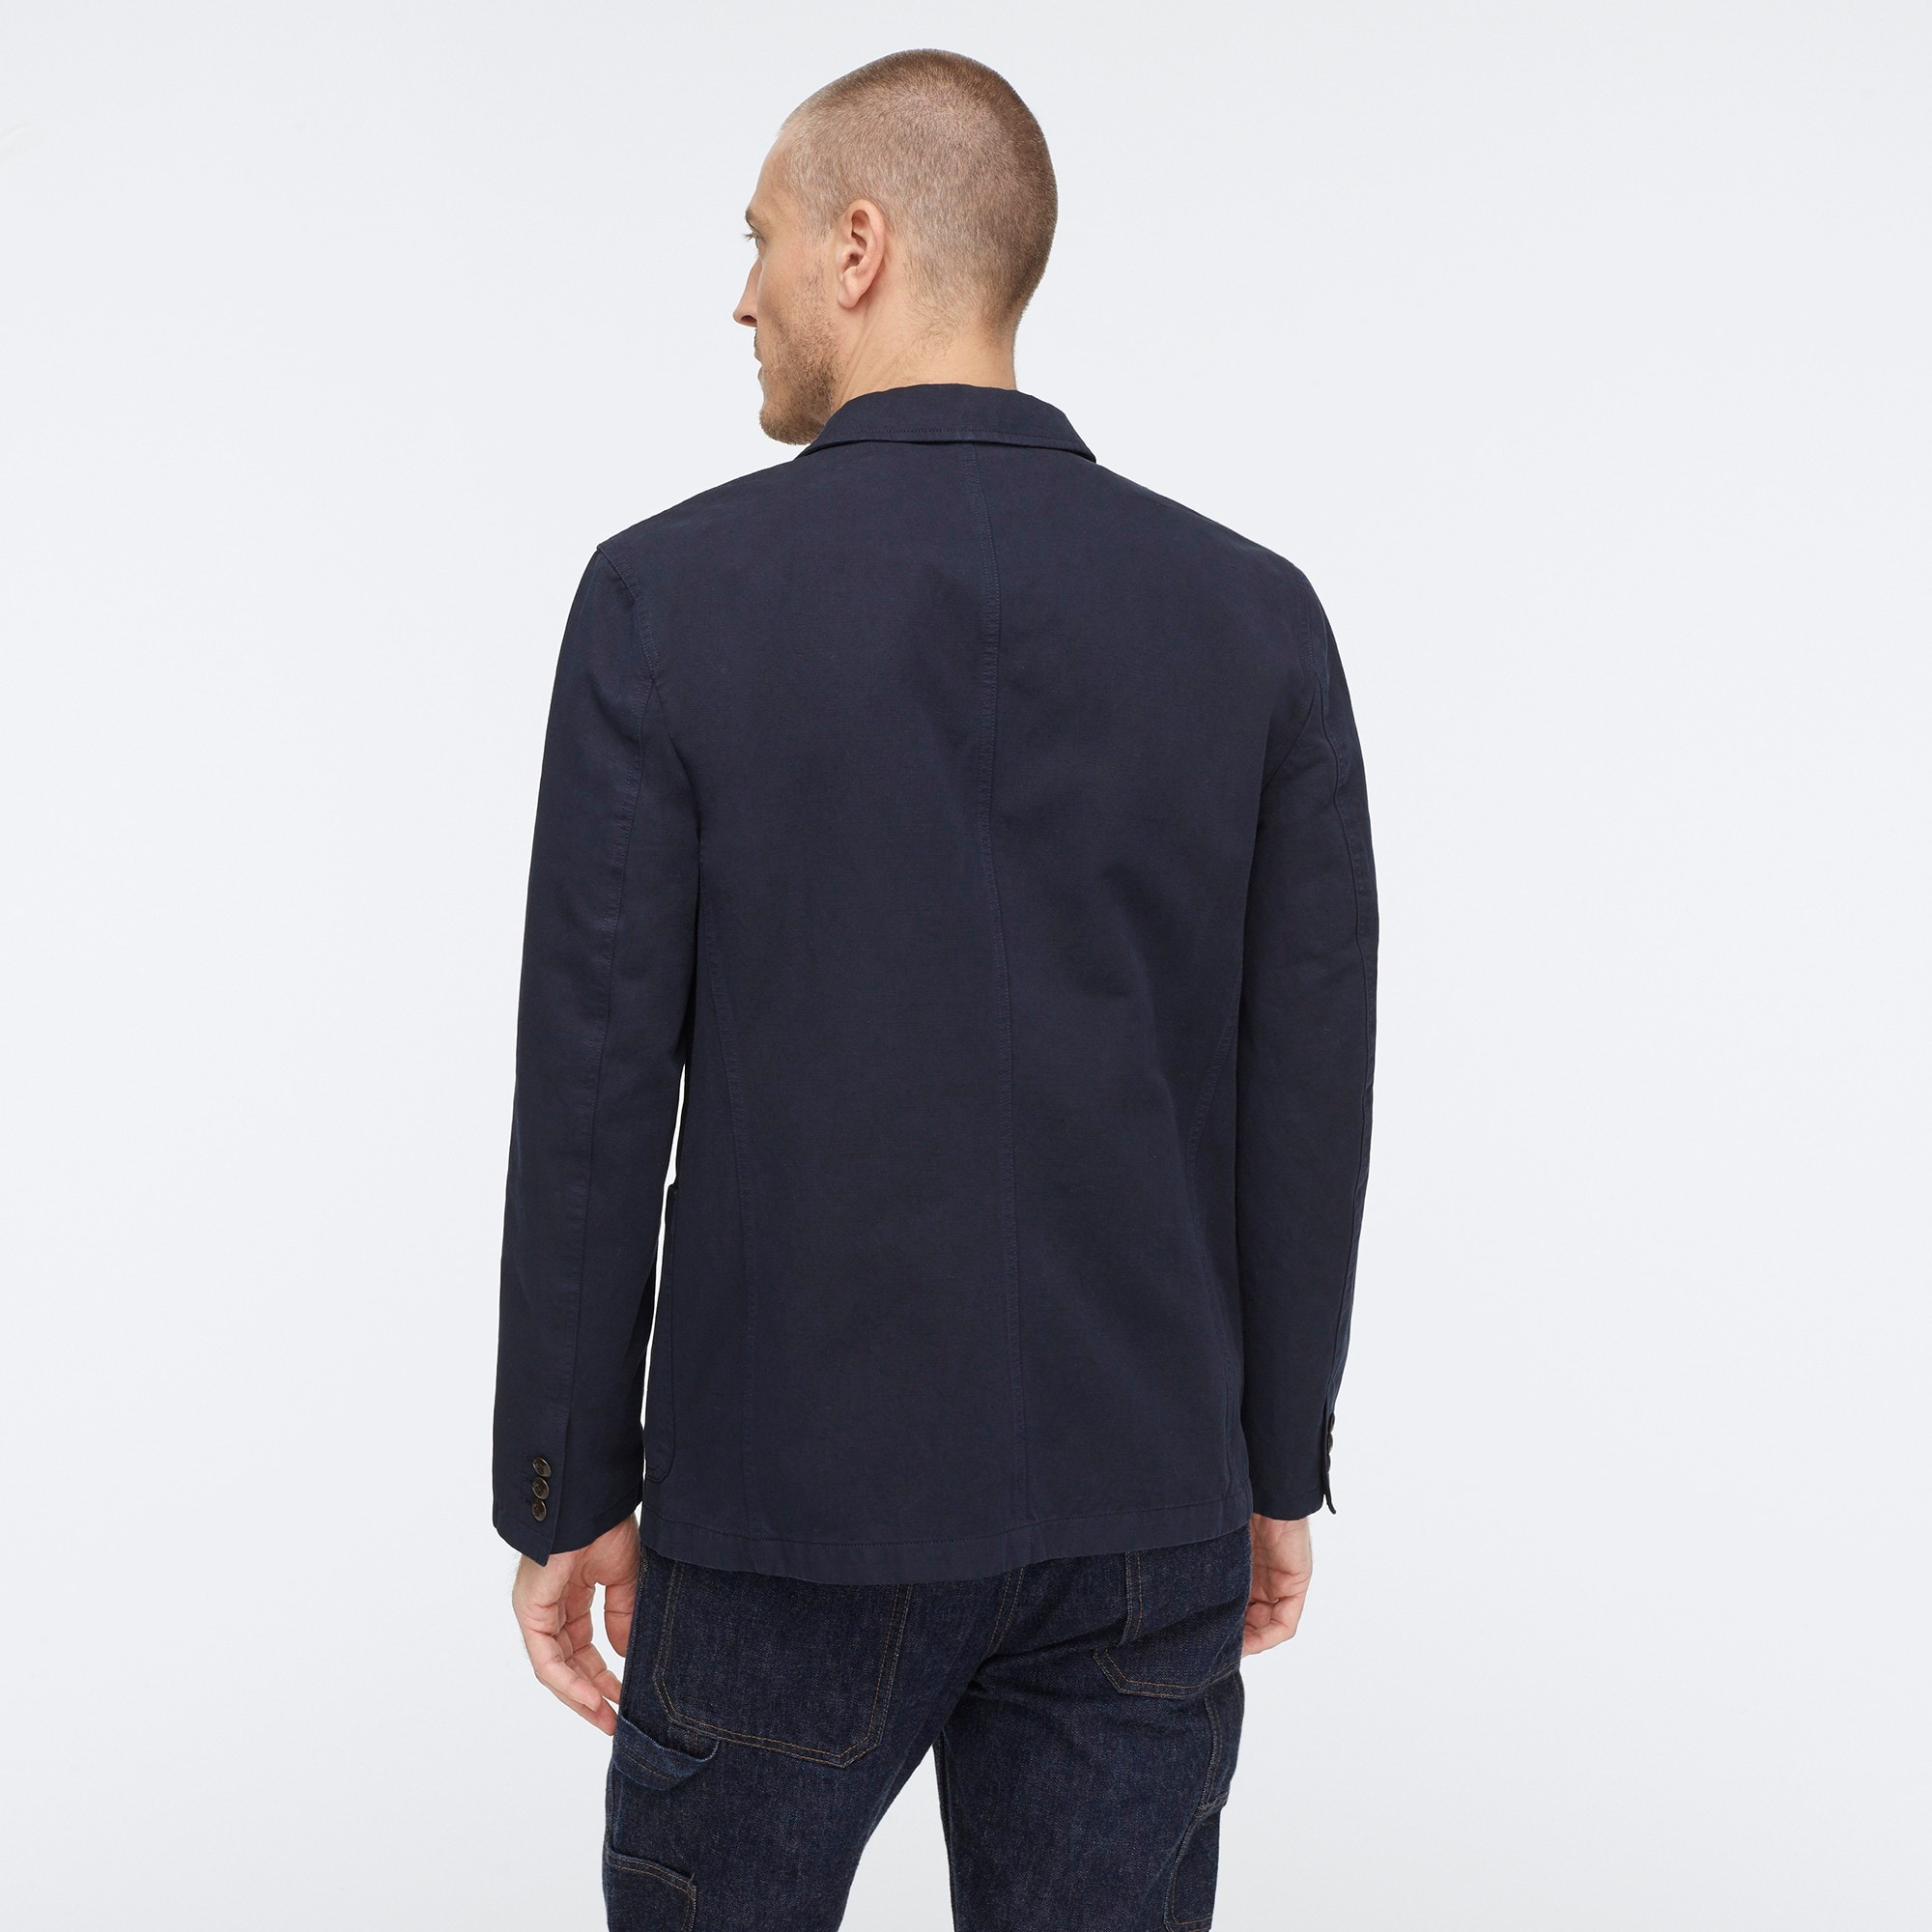 Image 2 for Wallace & Barnes garment-dyed chore blazer